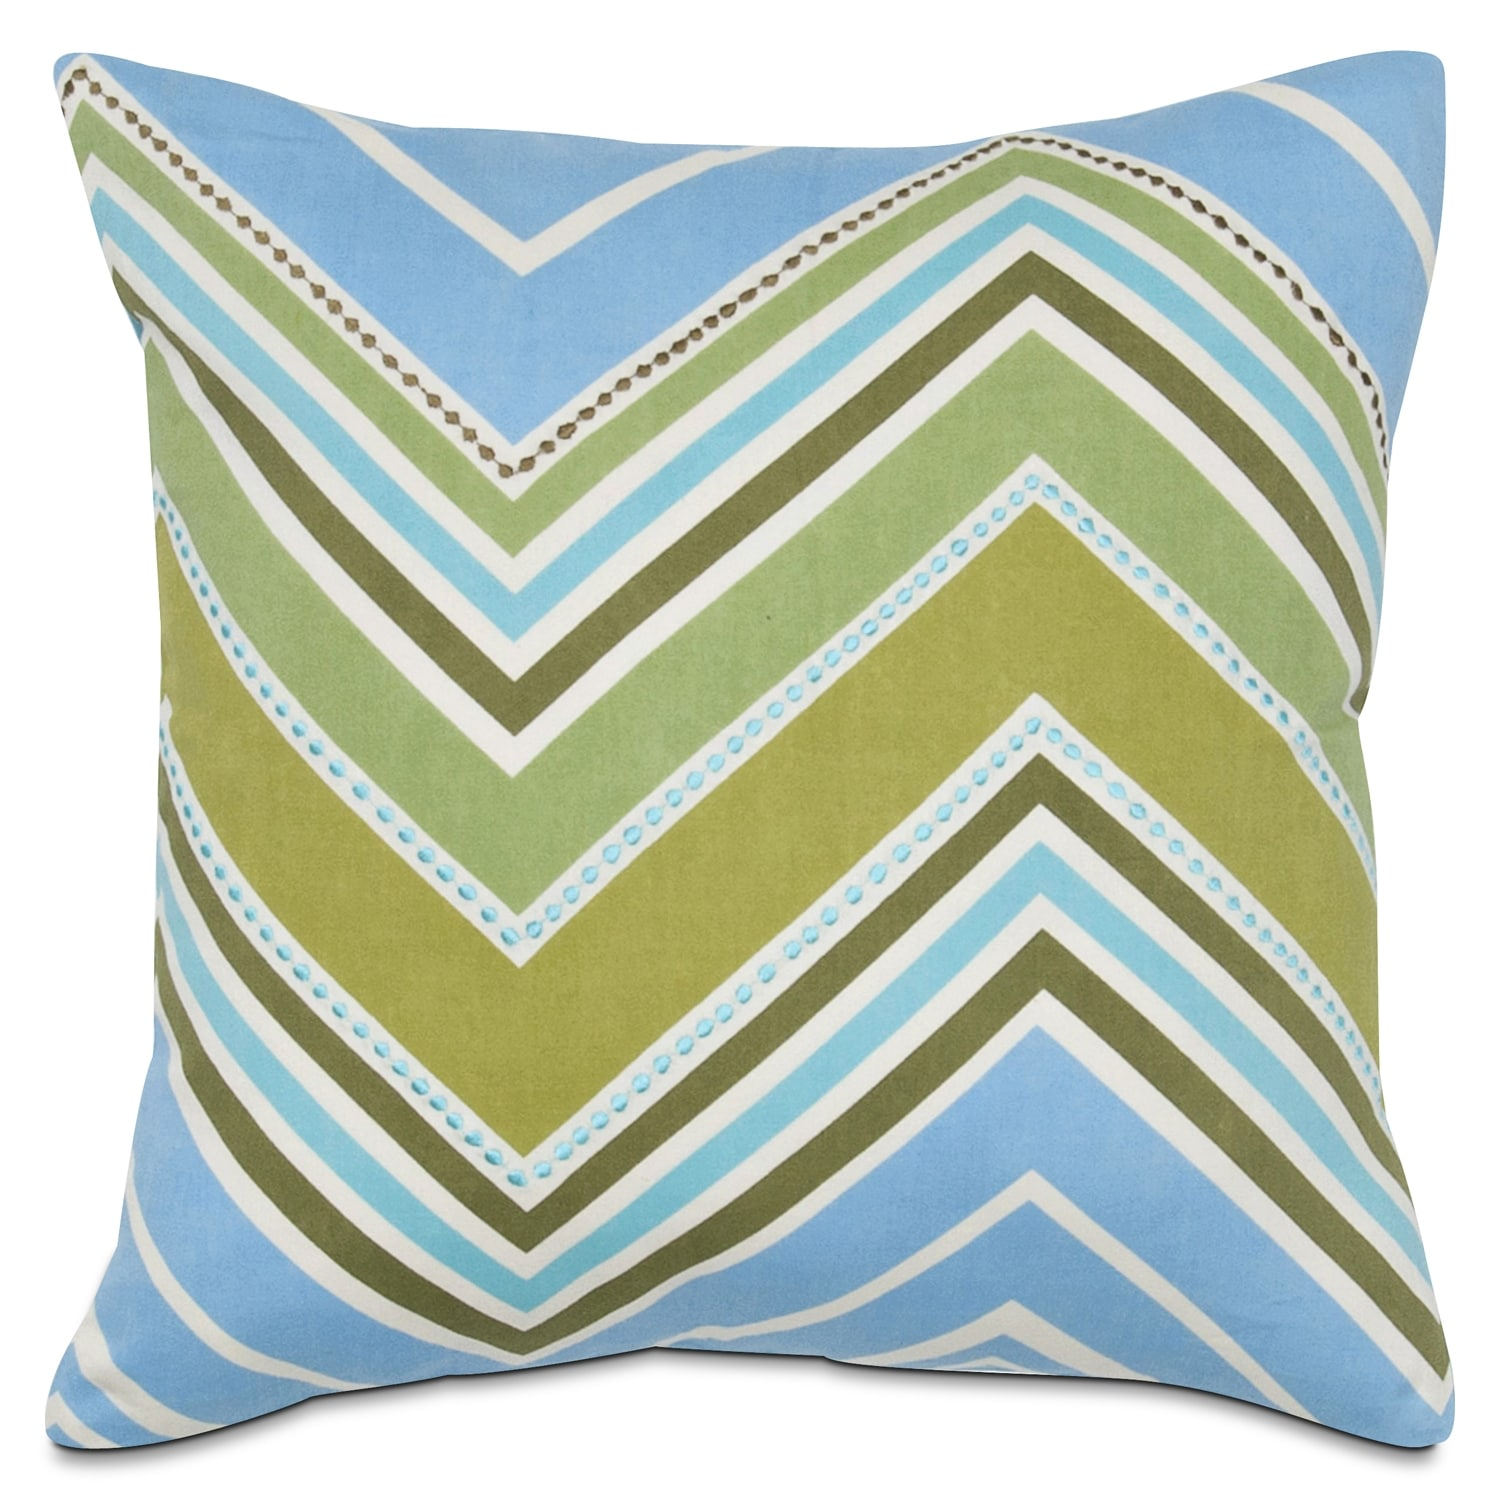 Hippie Chick Wave Decorative Pillow